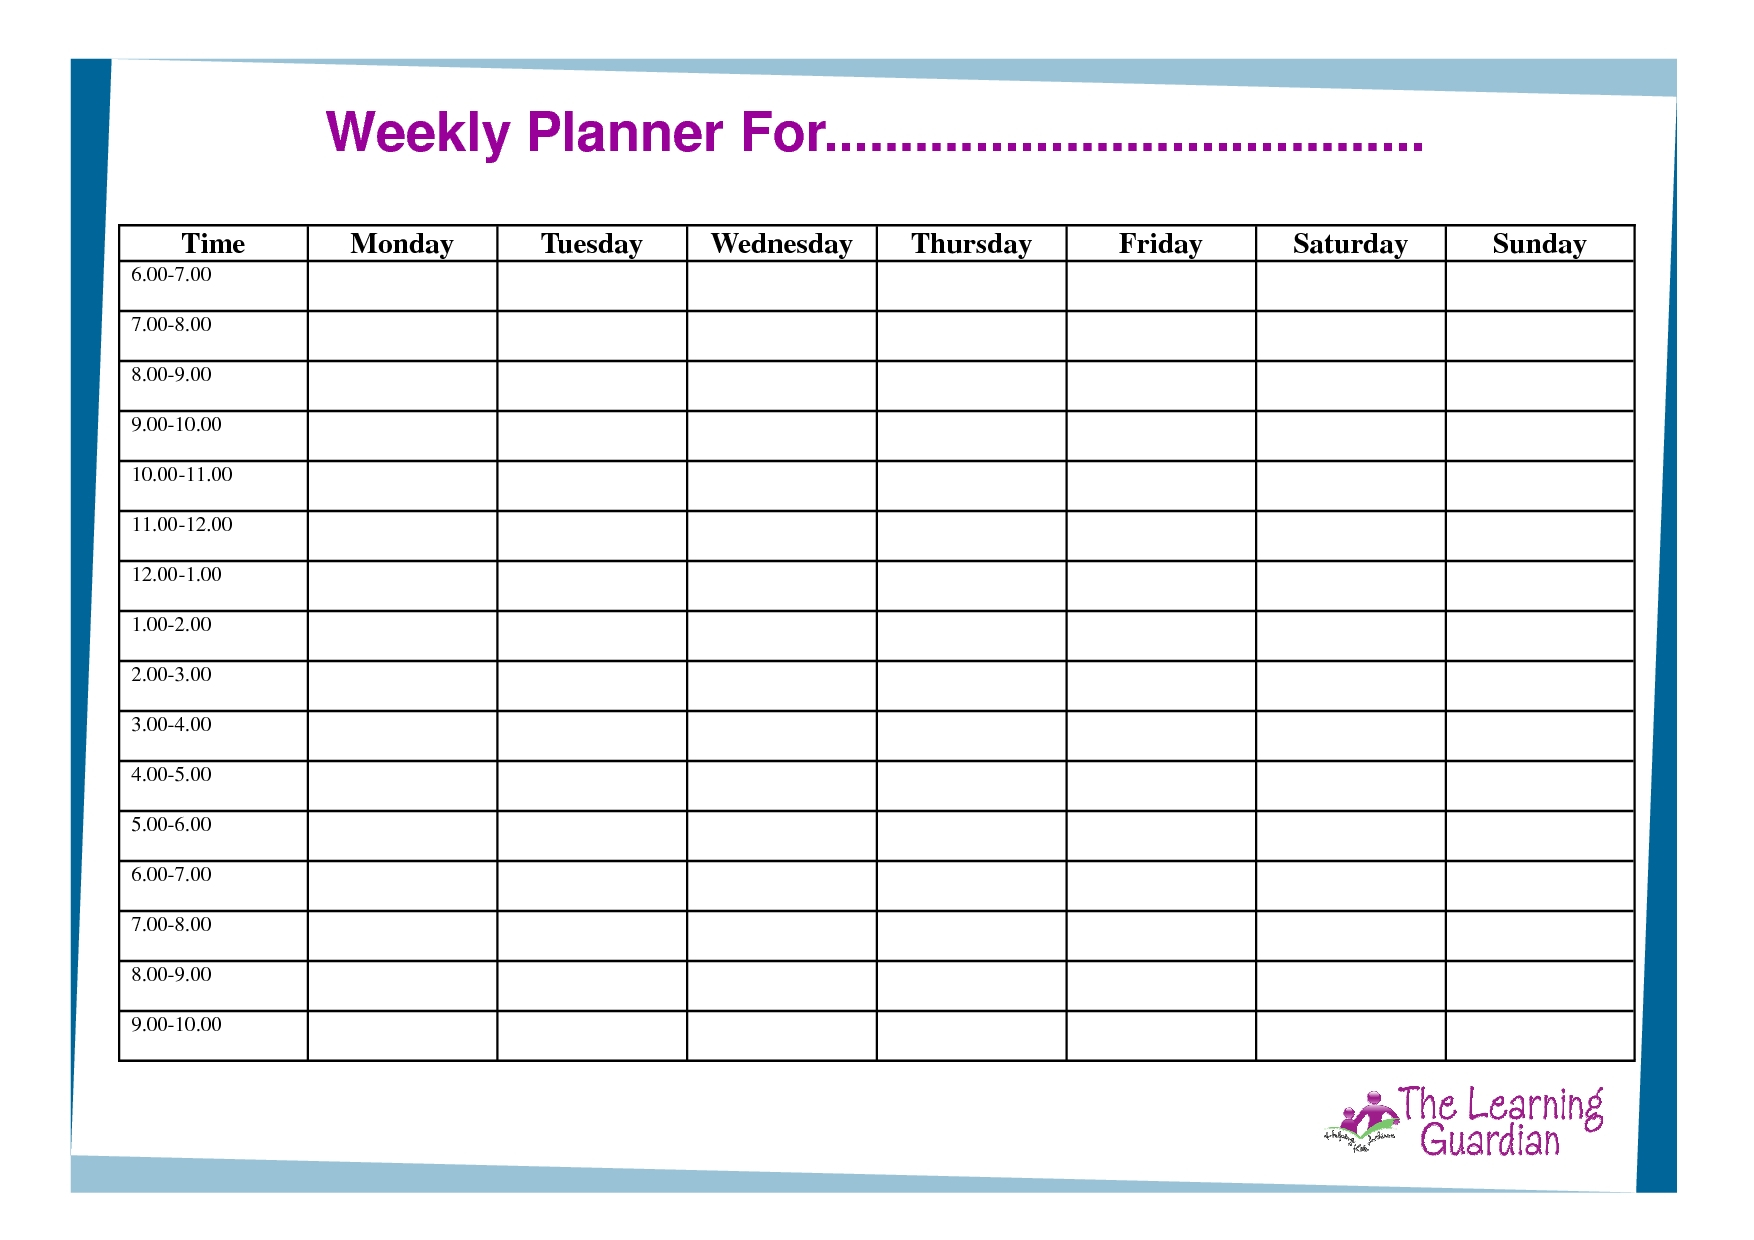 Weekly Calendar Template Monday To Friday | Calendar Monday Friday Calendar Template Printable